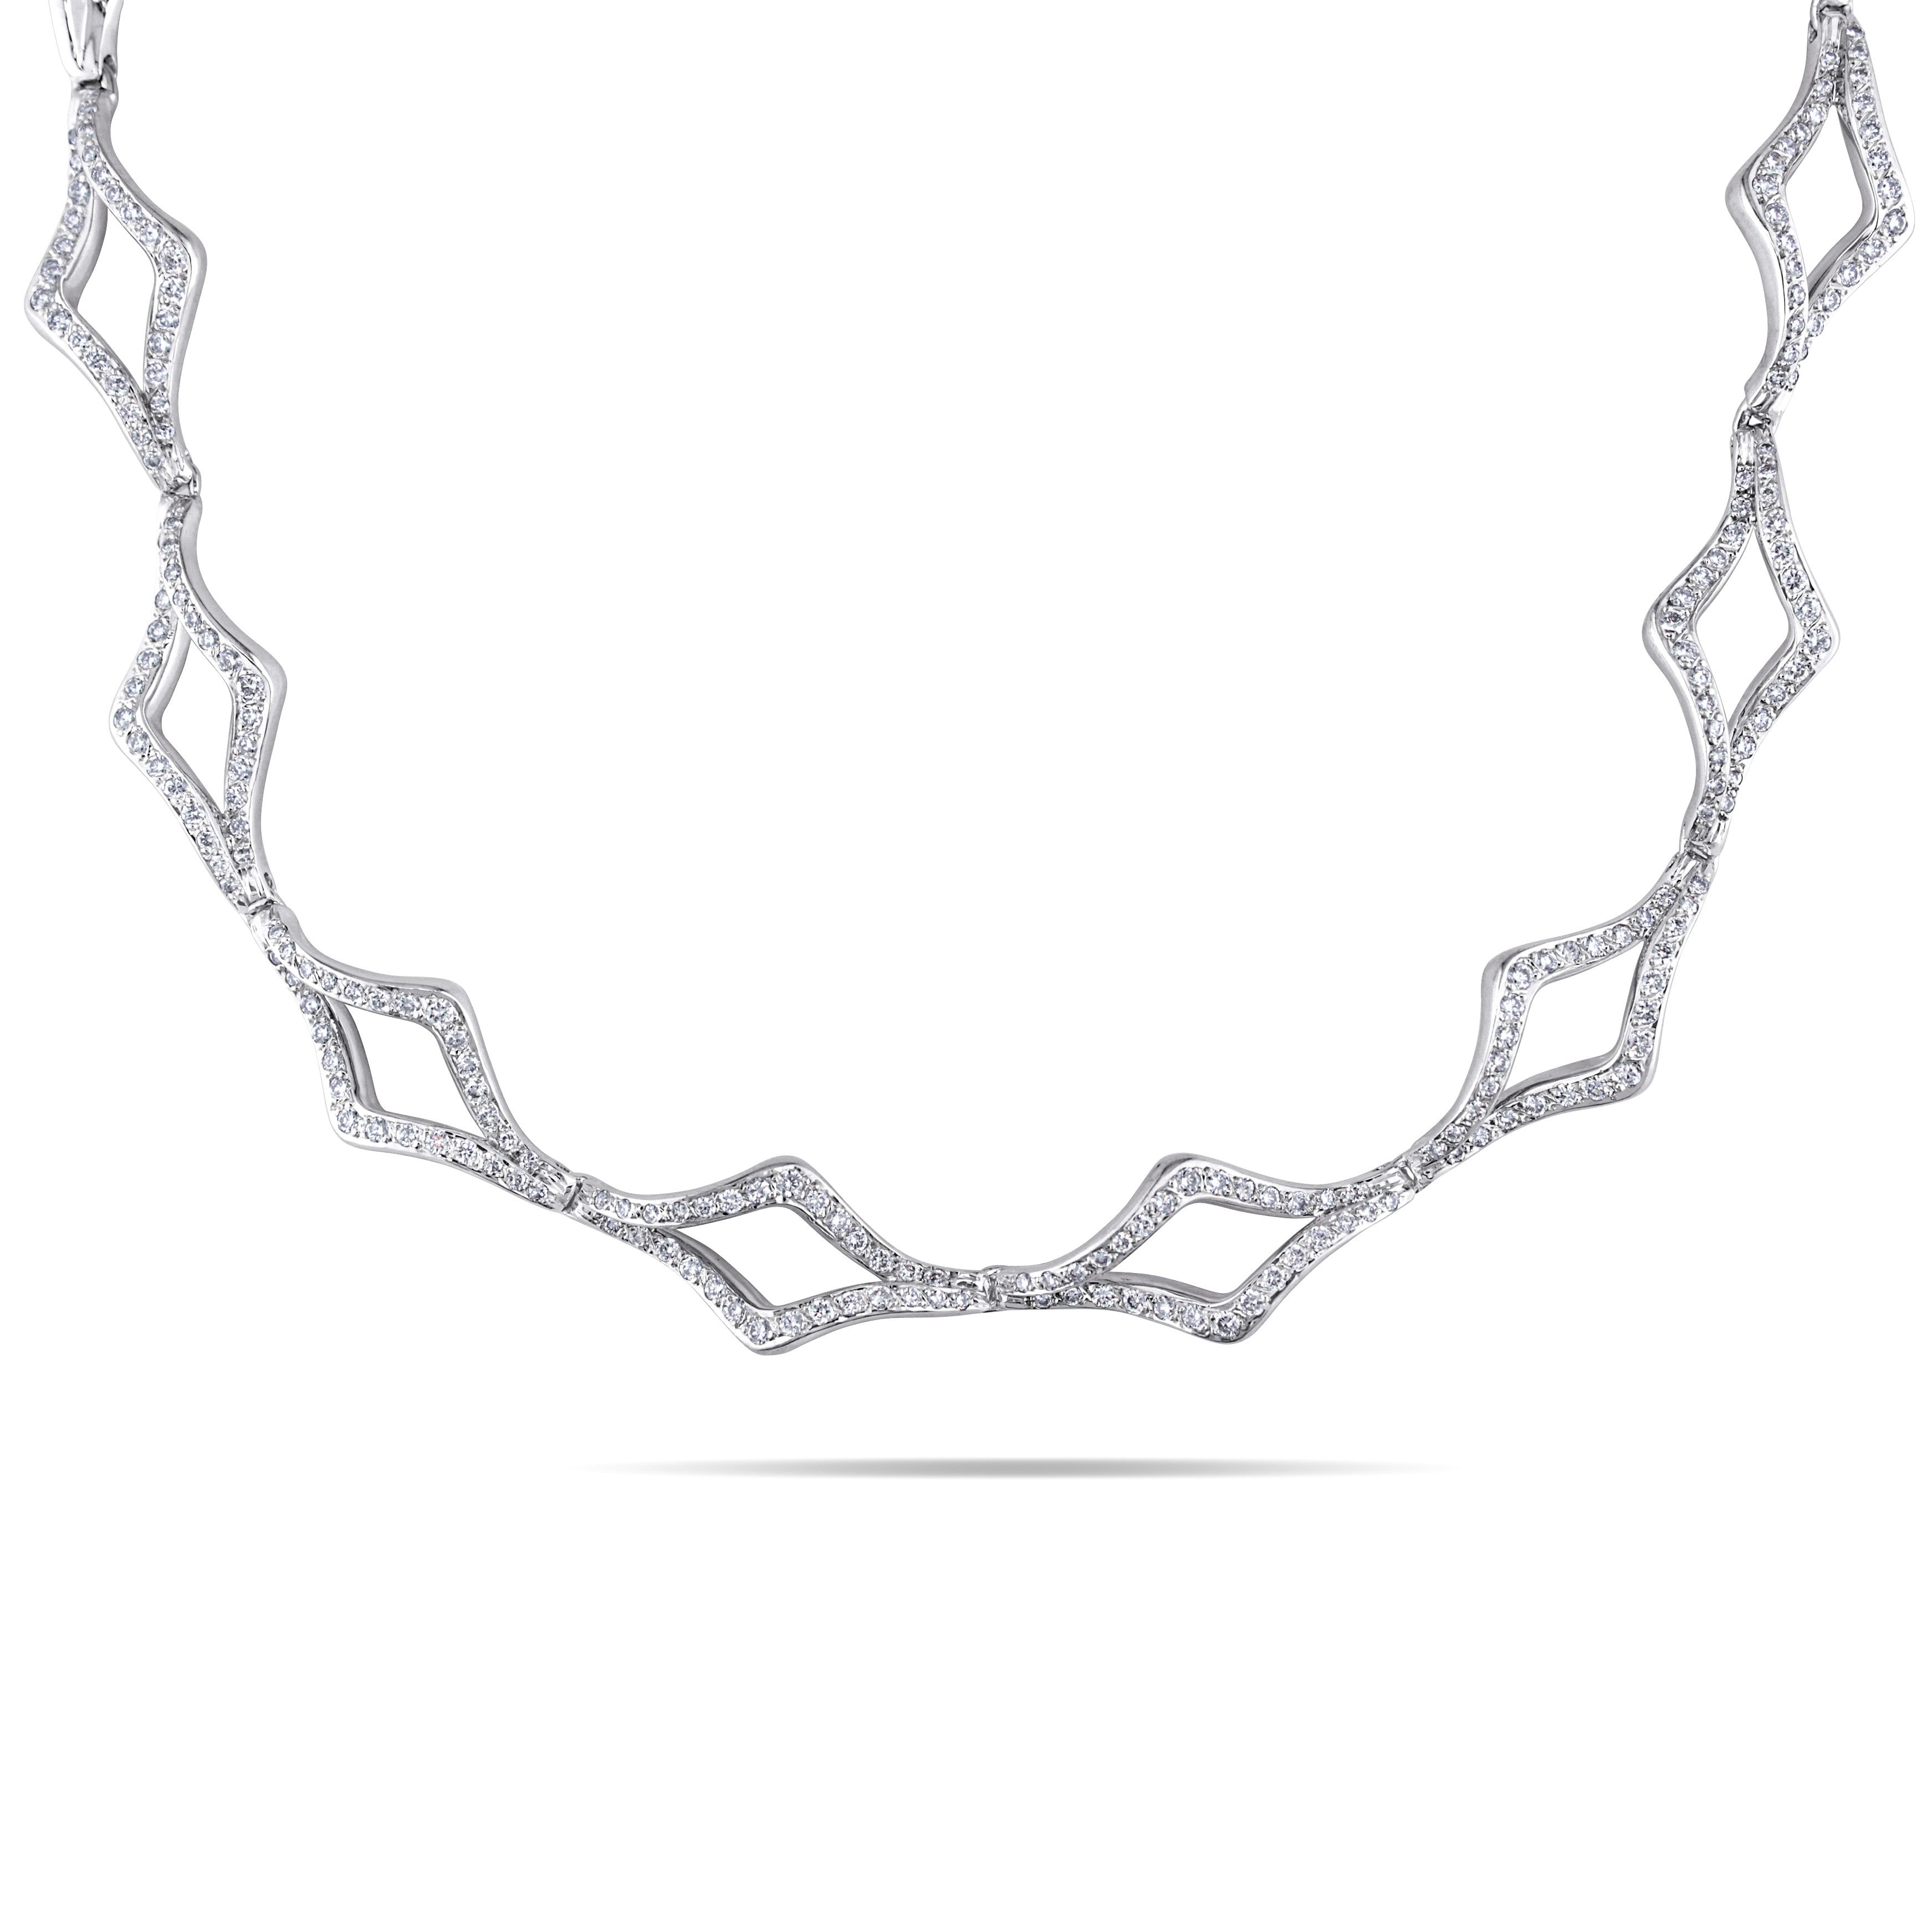 Miadora 18k White Gold 2 1/2ct TDW Diamond Open Link Necklace (G-H, SI1-SI2)